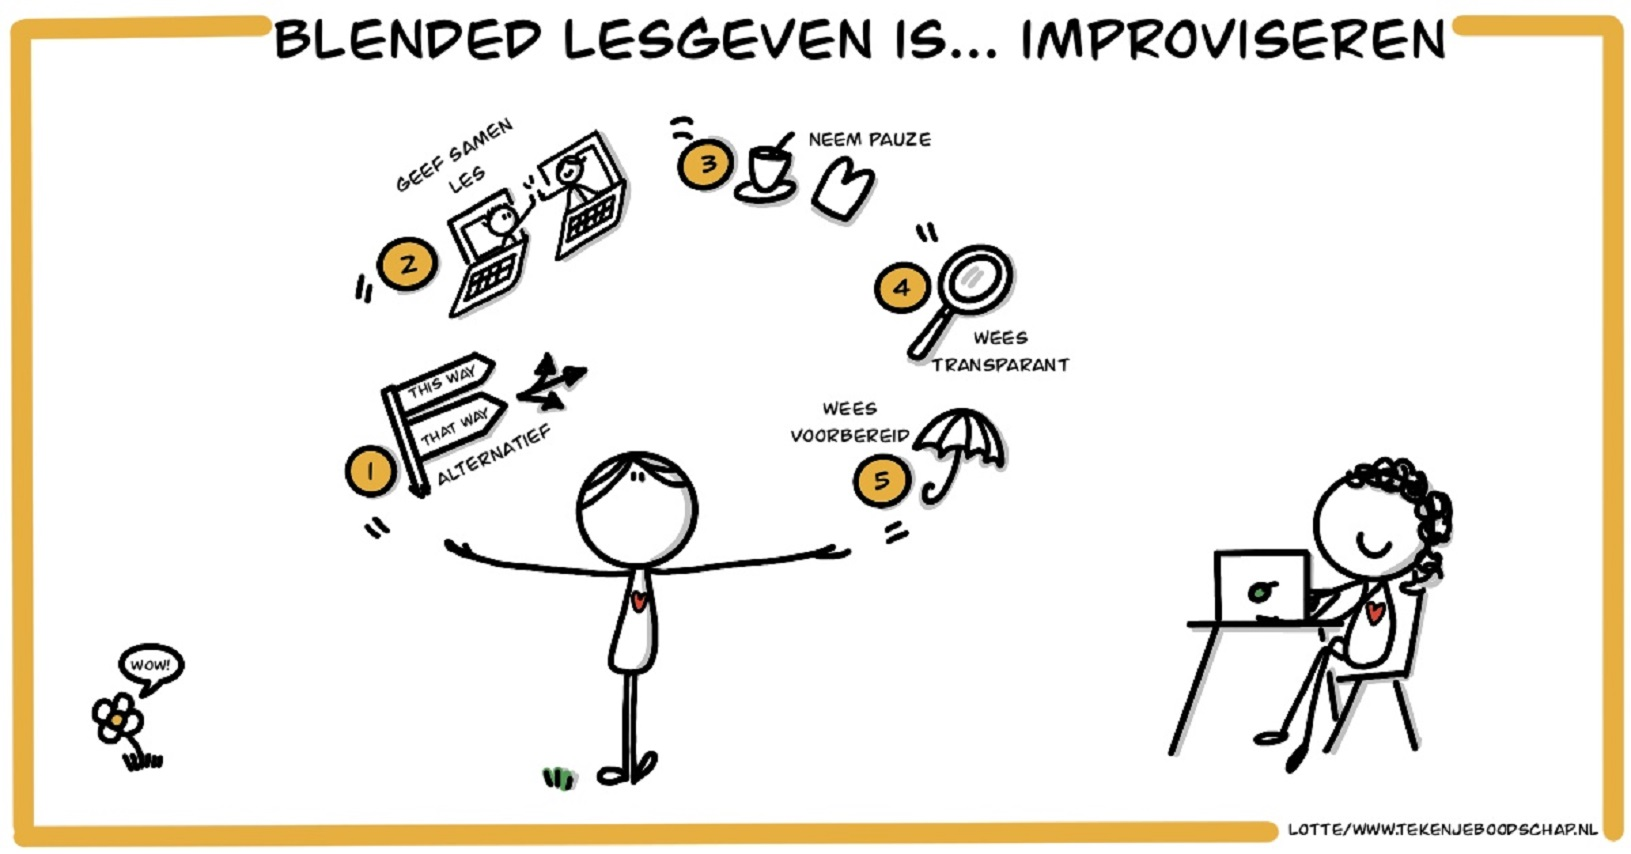 """Featured image for """"Blended lesgeven is . . . improviseren"""""""